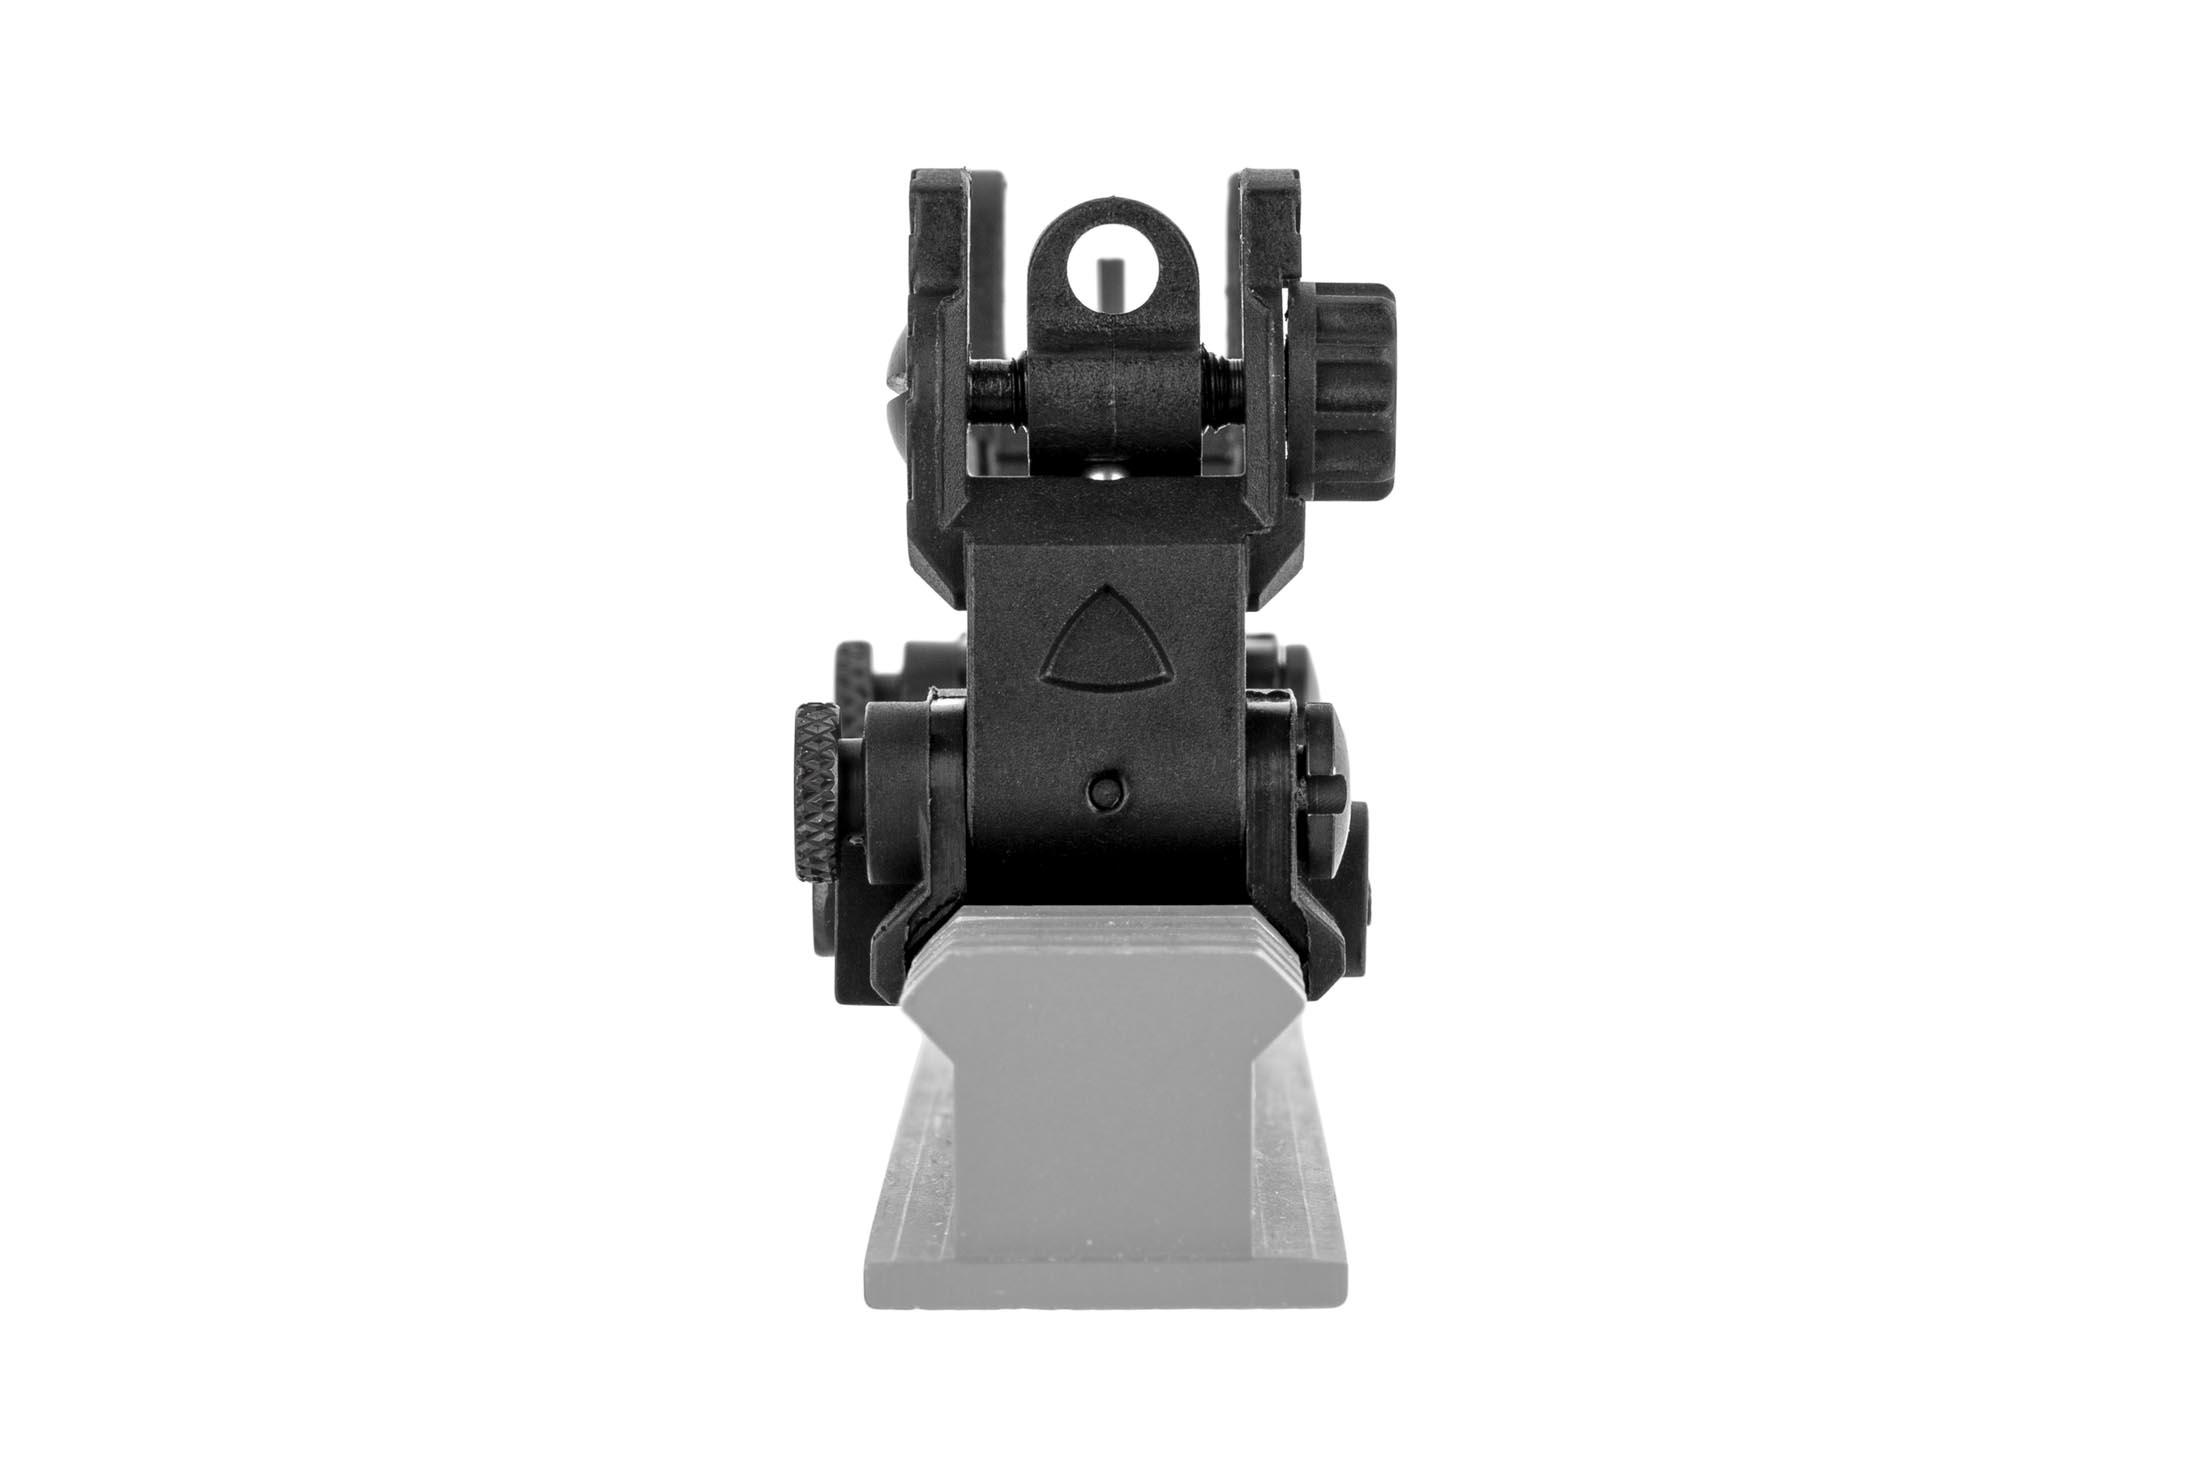 The Gun Tec USA EZ folding back up sights feature a dual aperture rear